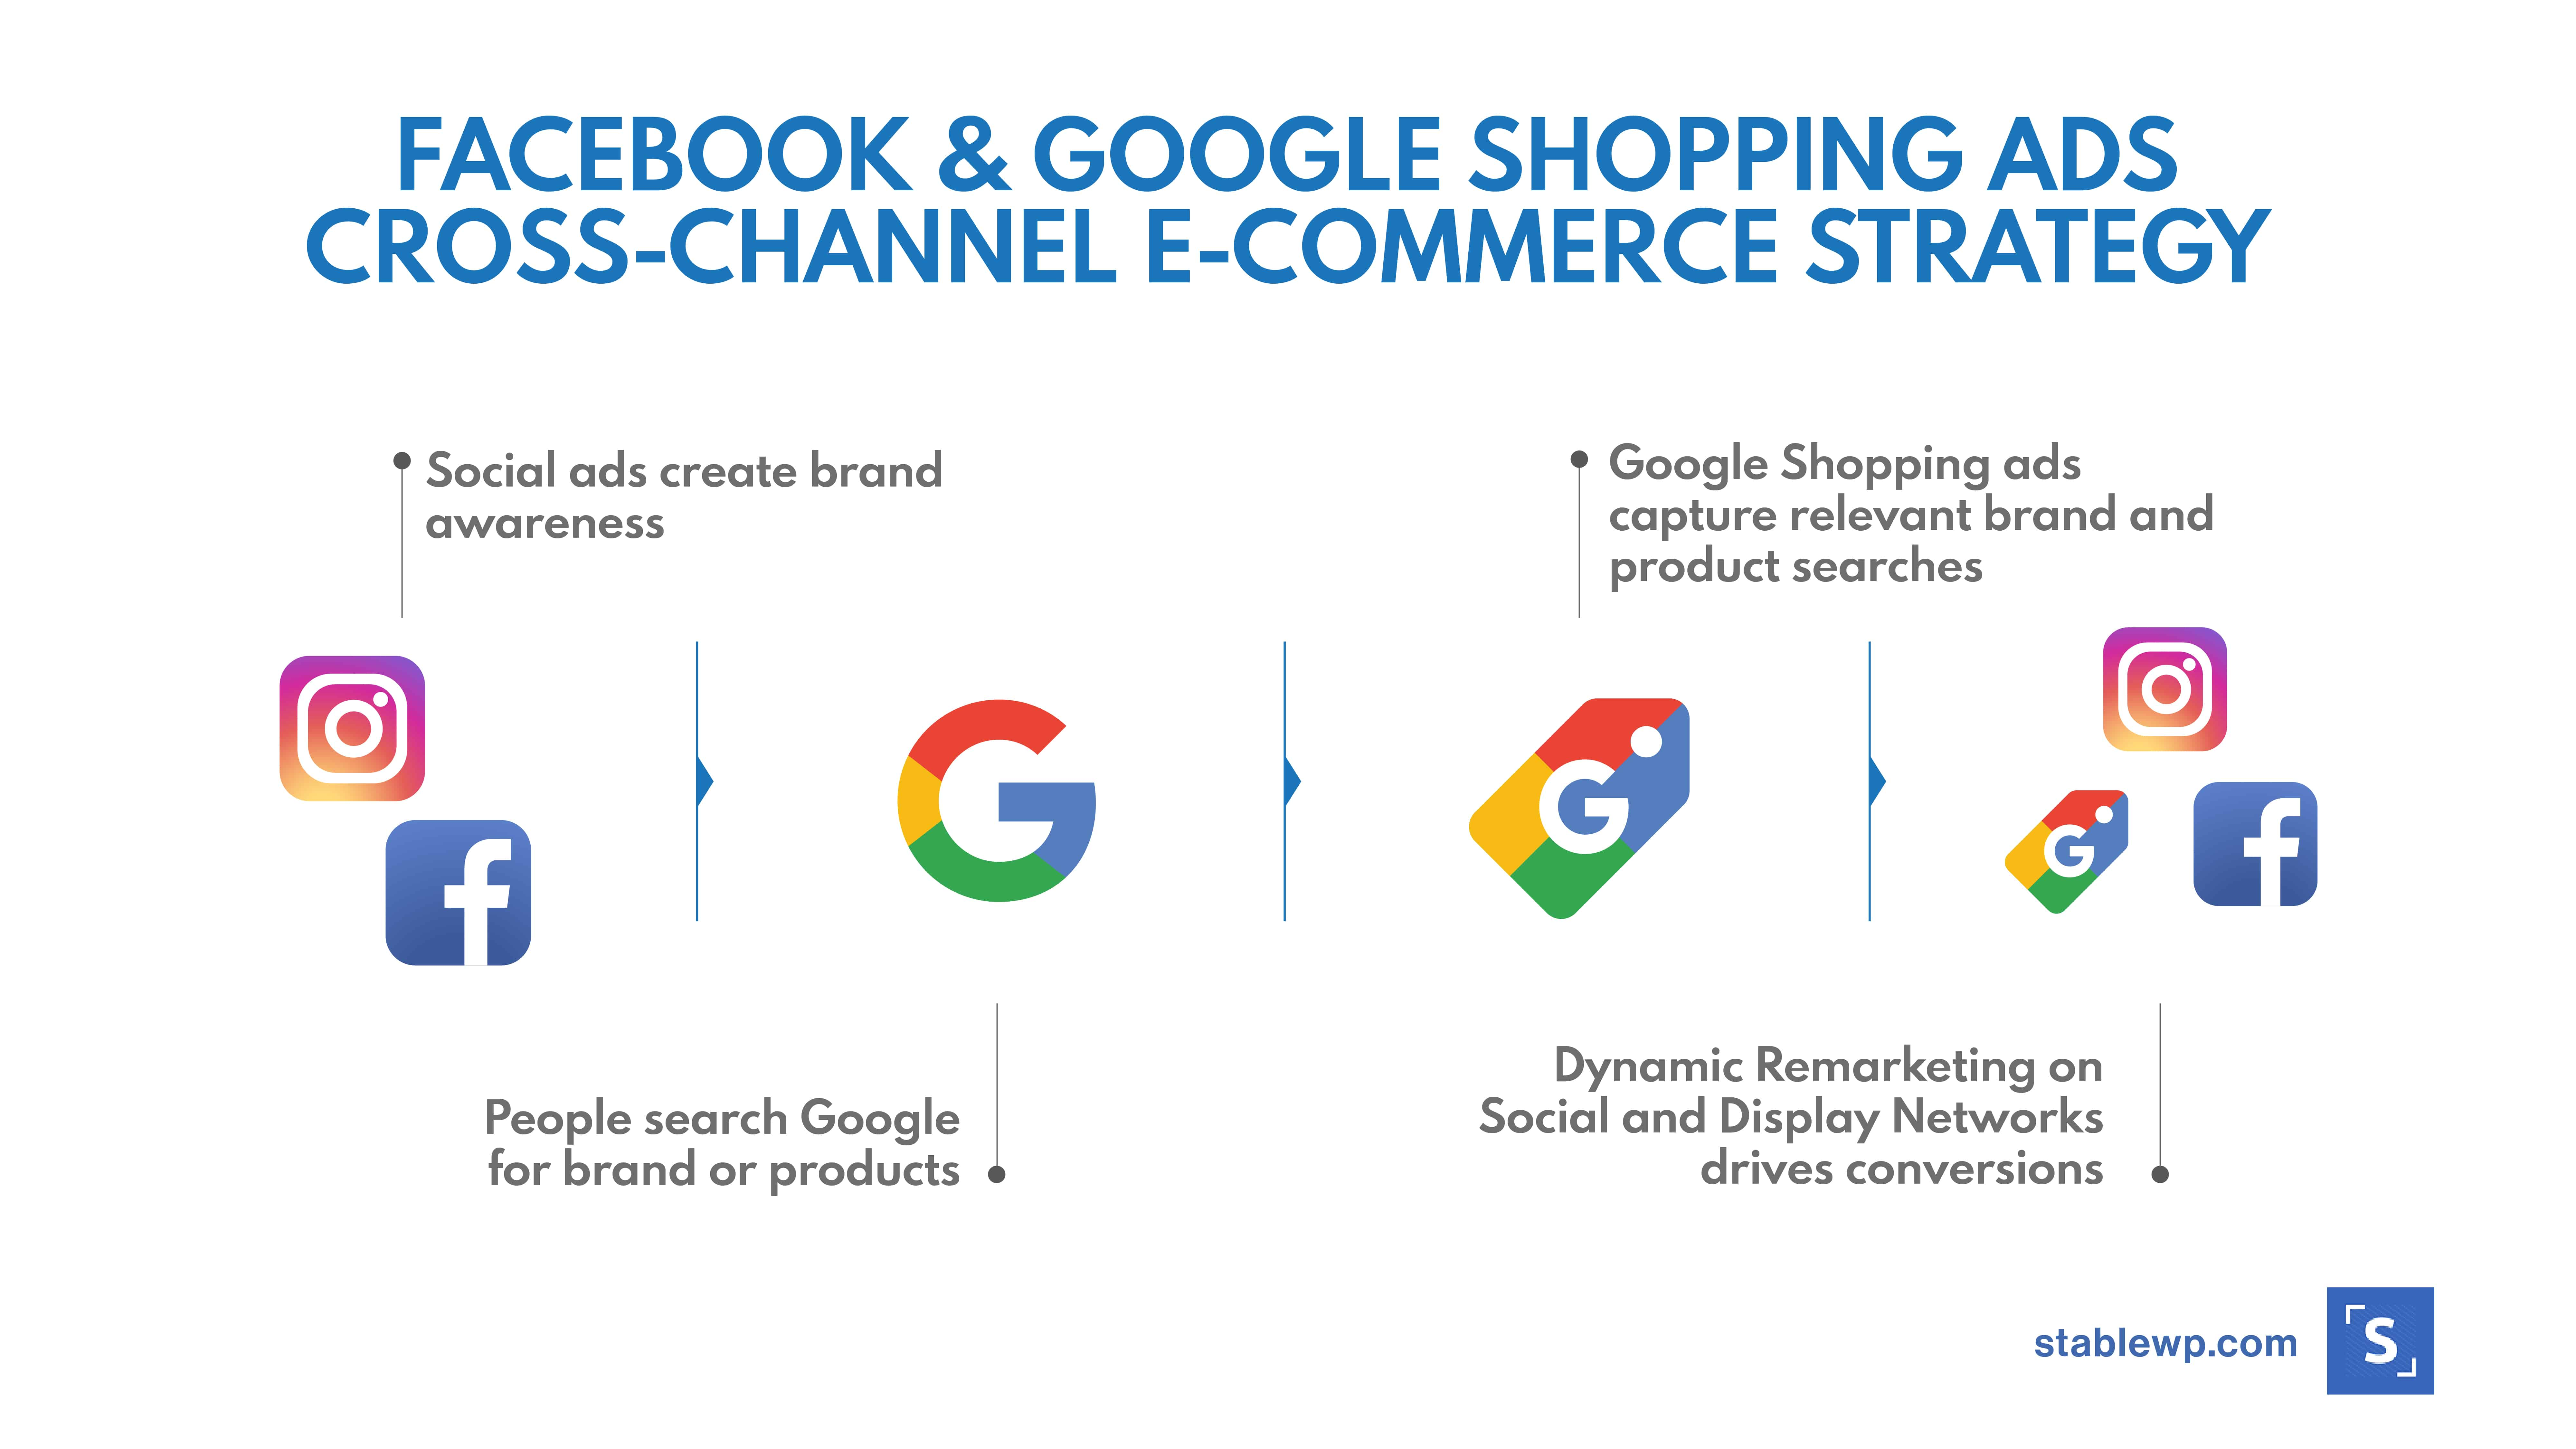 Combining Facebook Ads and Google Shopping Ads strategy for e-commerce